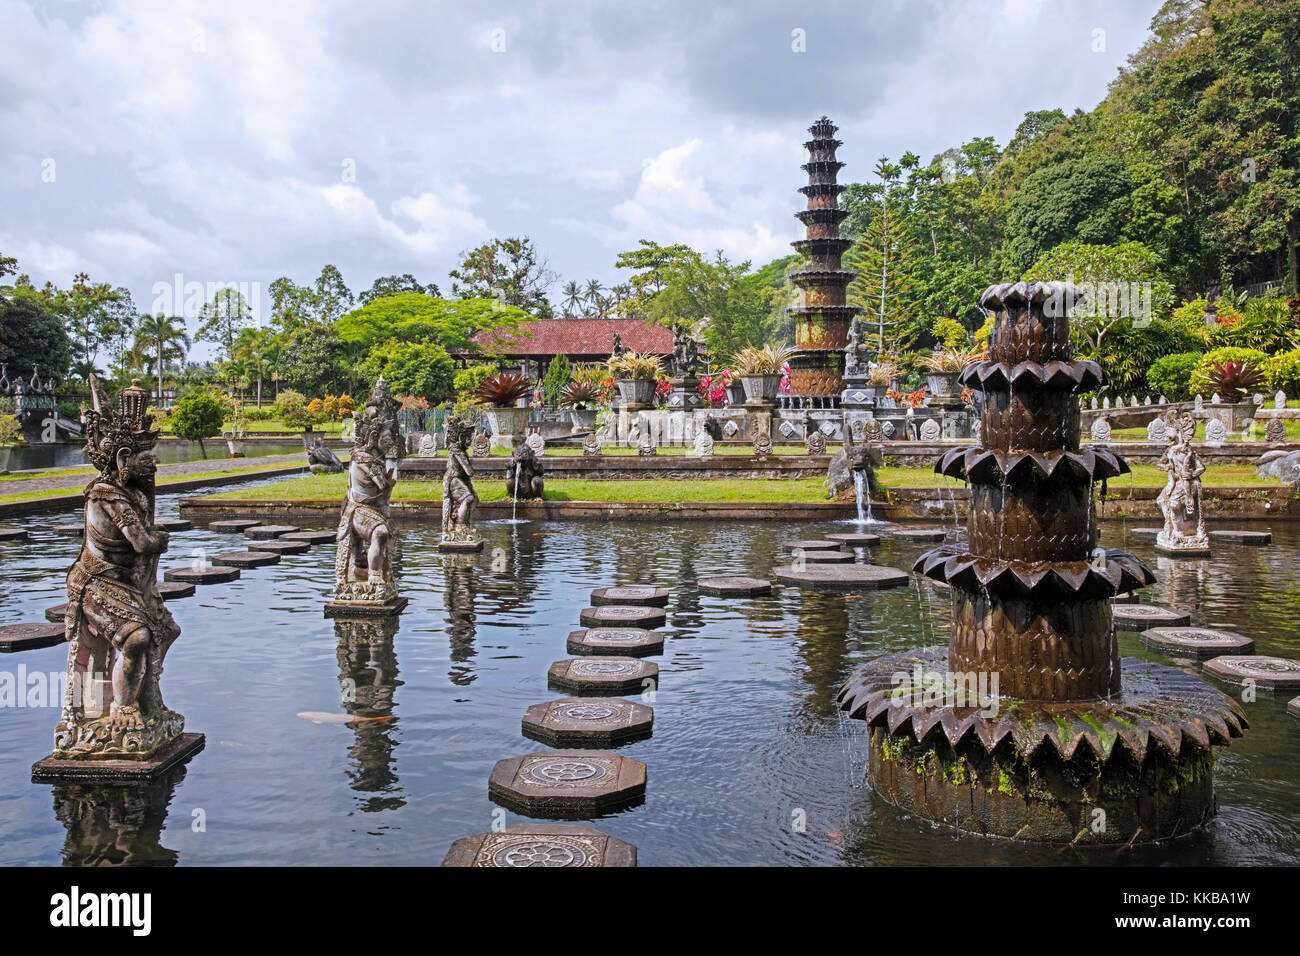 Ponds and fountains at Tirta Gangga, former royal water palace at Ababi, Karangasem near Abang in eastern Bali, - Stock Image